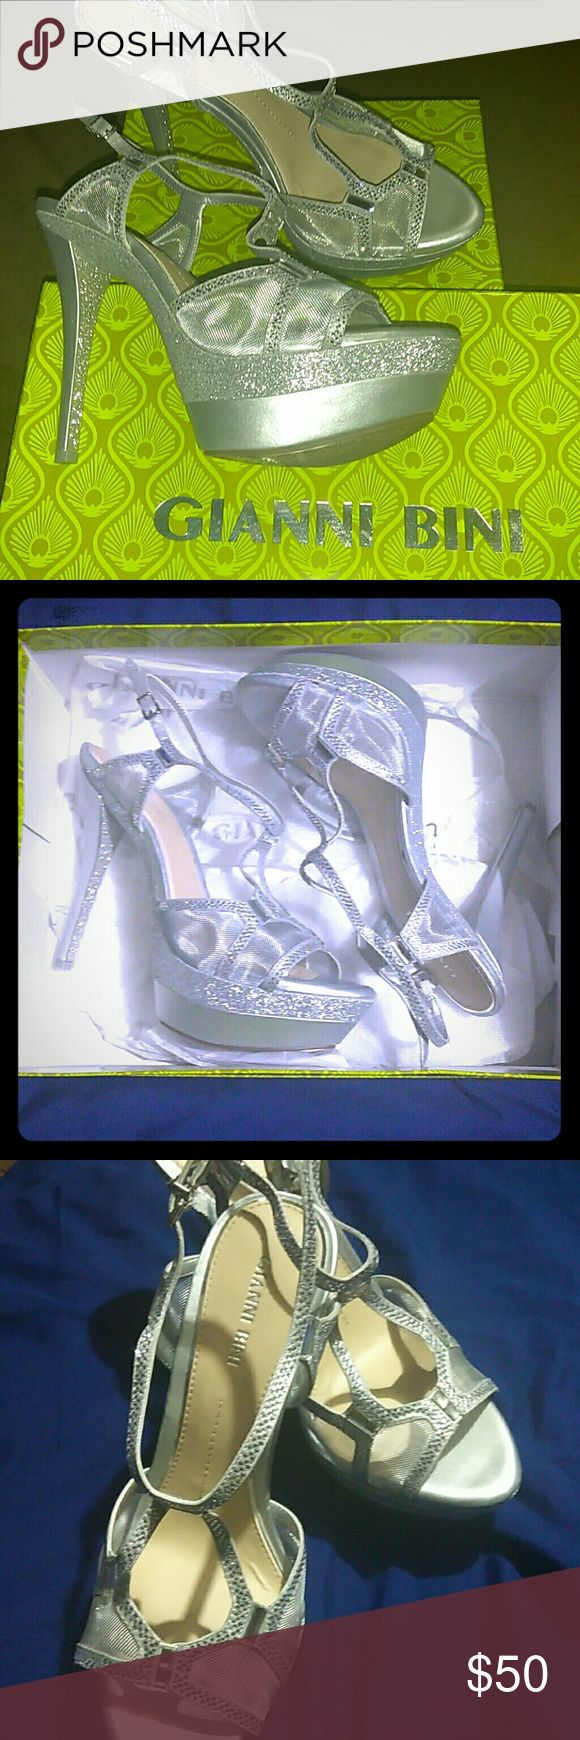 Gianni Bini Heels Absolutely flawless brand new only wore for 2hrs. Size 8.5 Gianni Bin Heels! Perfect for any formal event!! Gianni Bini Shoes Heels